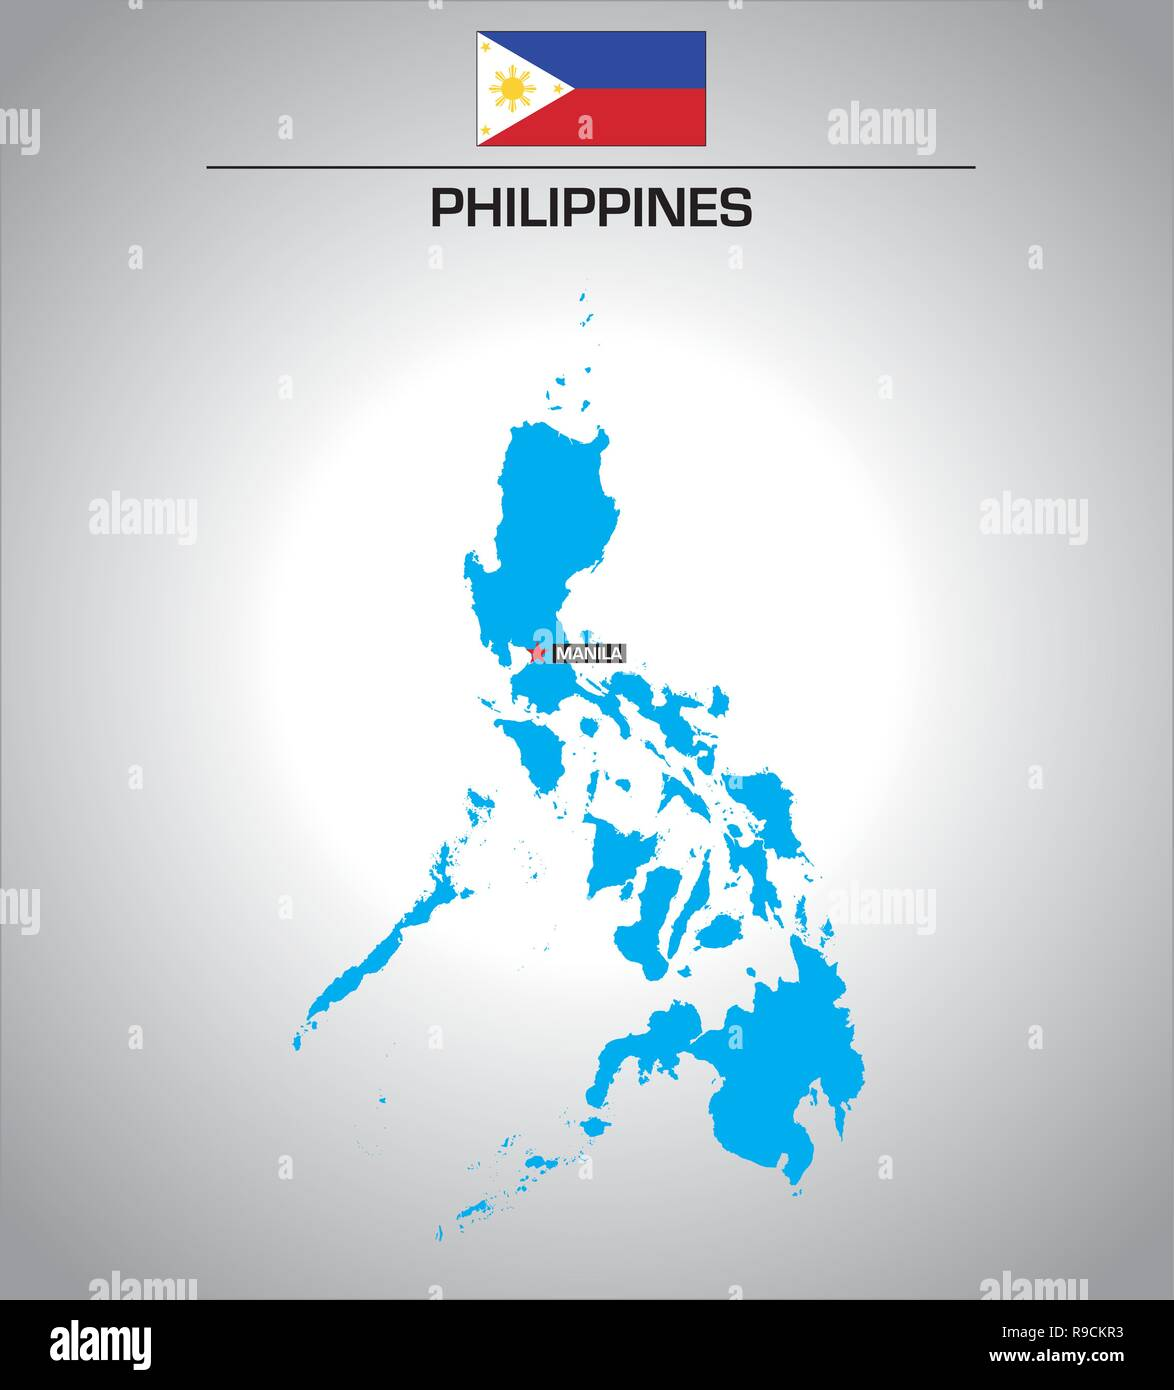 Simple contorno vectorial Mapa de Filipinas con bandera Imagen De Stock